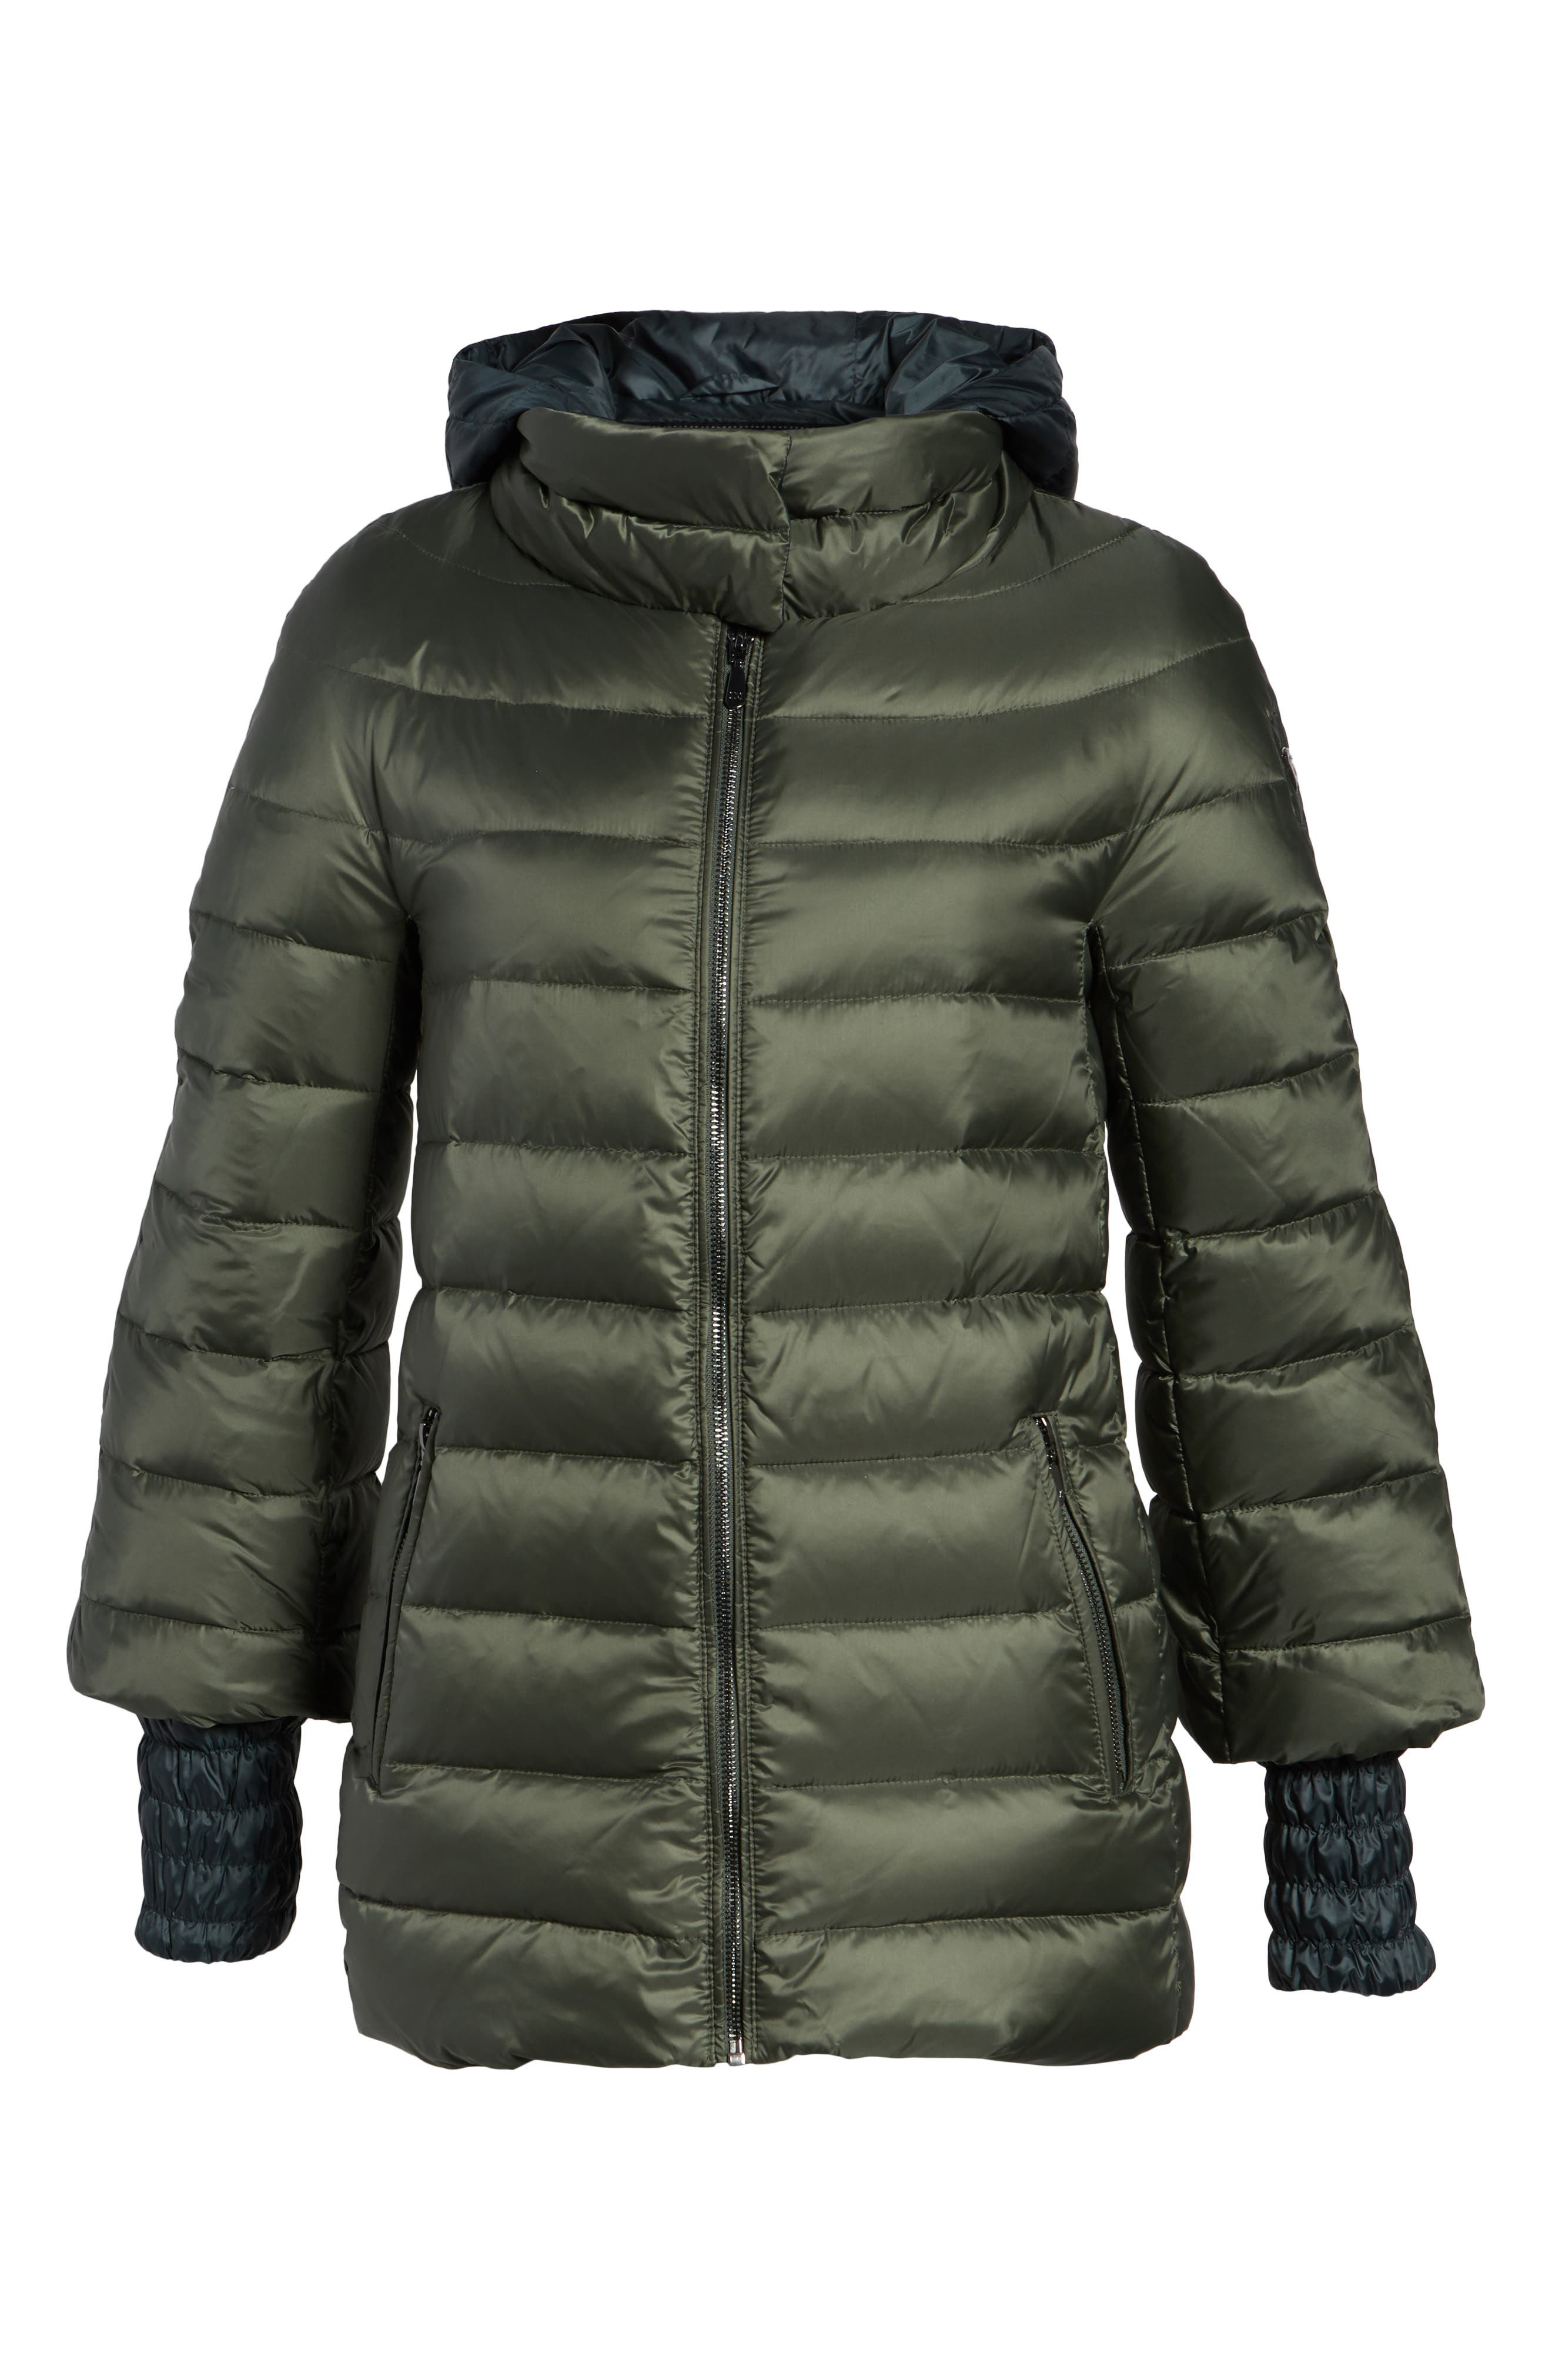 3-in-1 Layered Packable Quilted Down Coat,                             Alternate thumbnail 10, color,